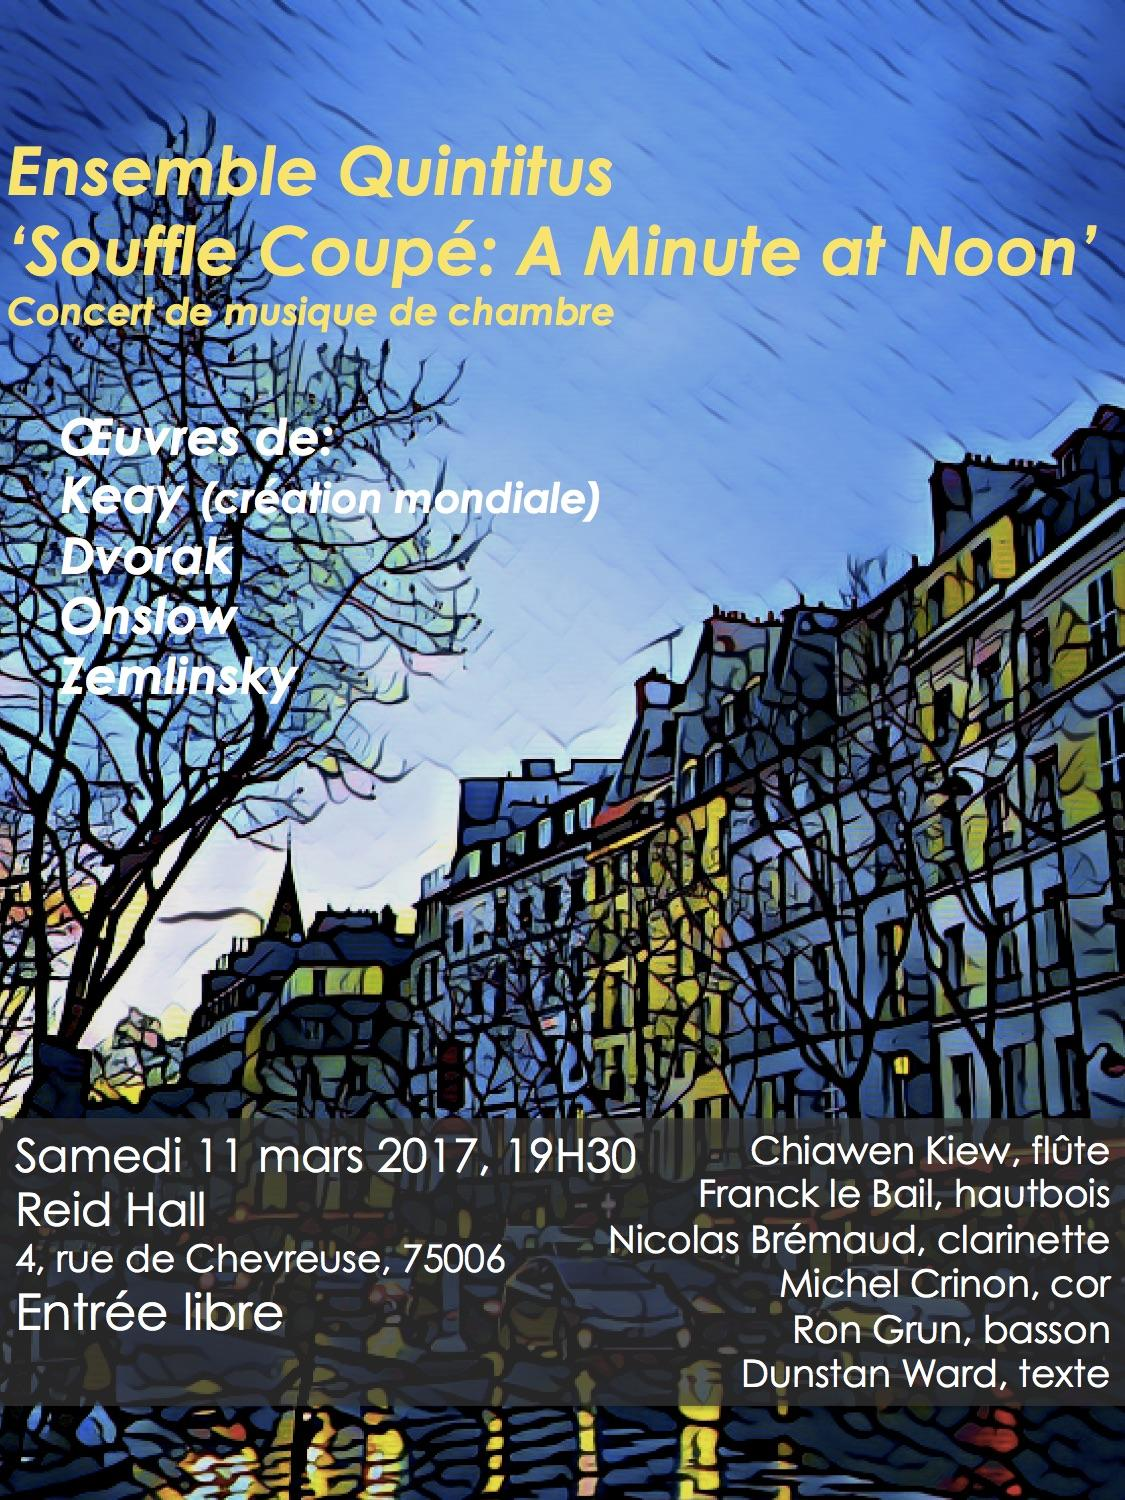 Concert: Souffle Coupé...A Minute at Noon